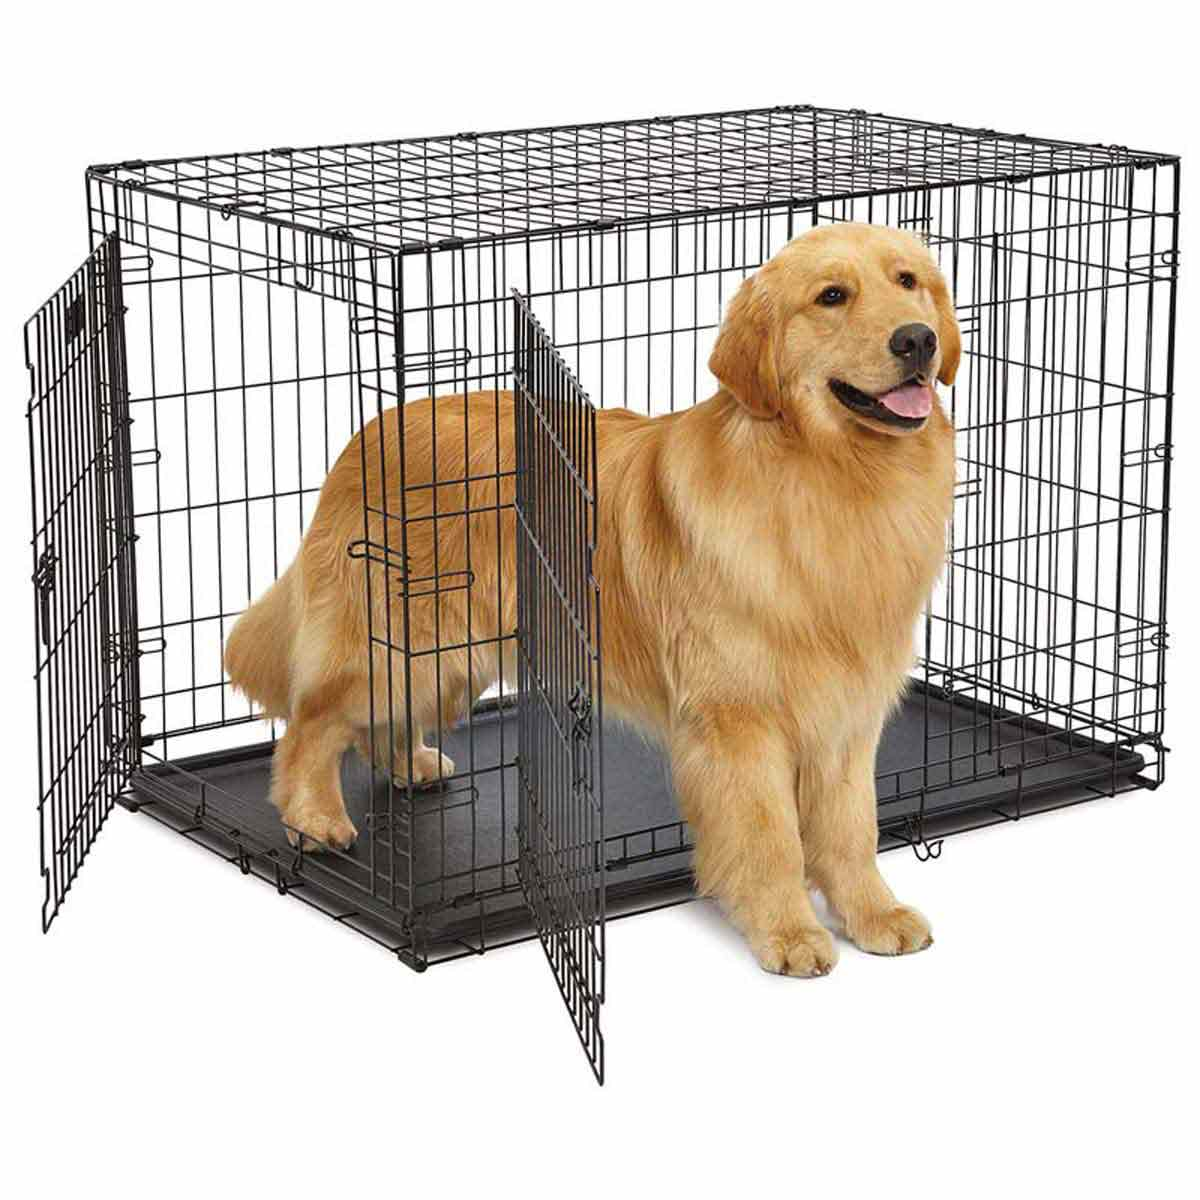 Midwest ConTour Crate Double Door for Crates - 42 inches by 29 inches by 30 inches